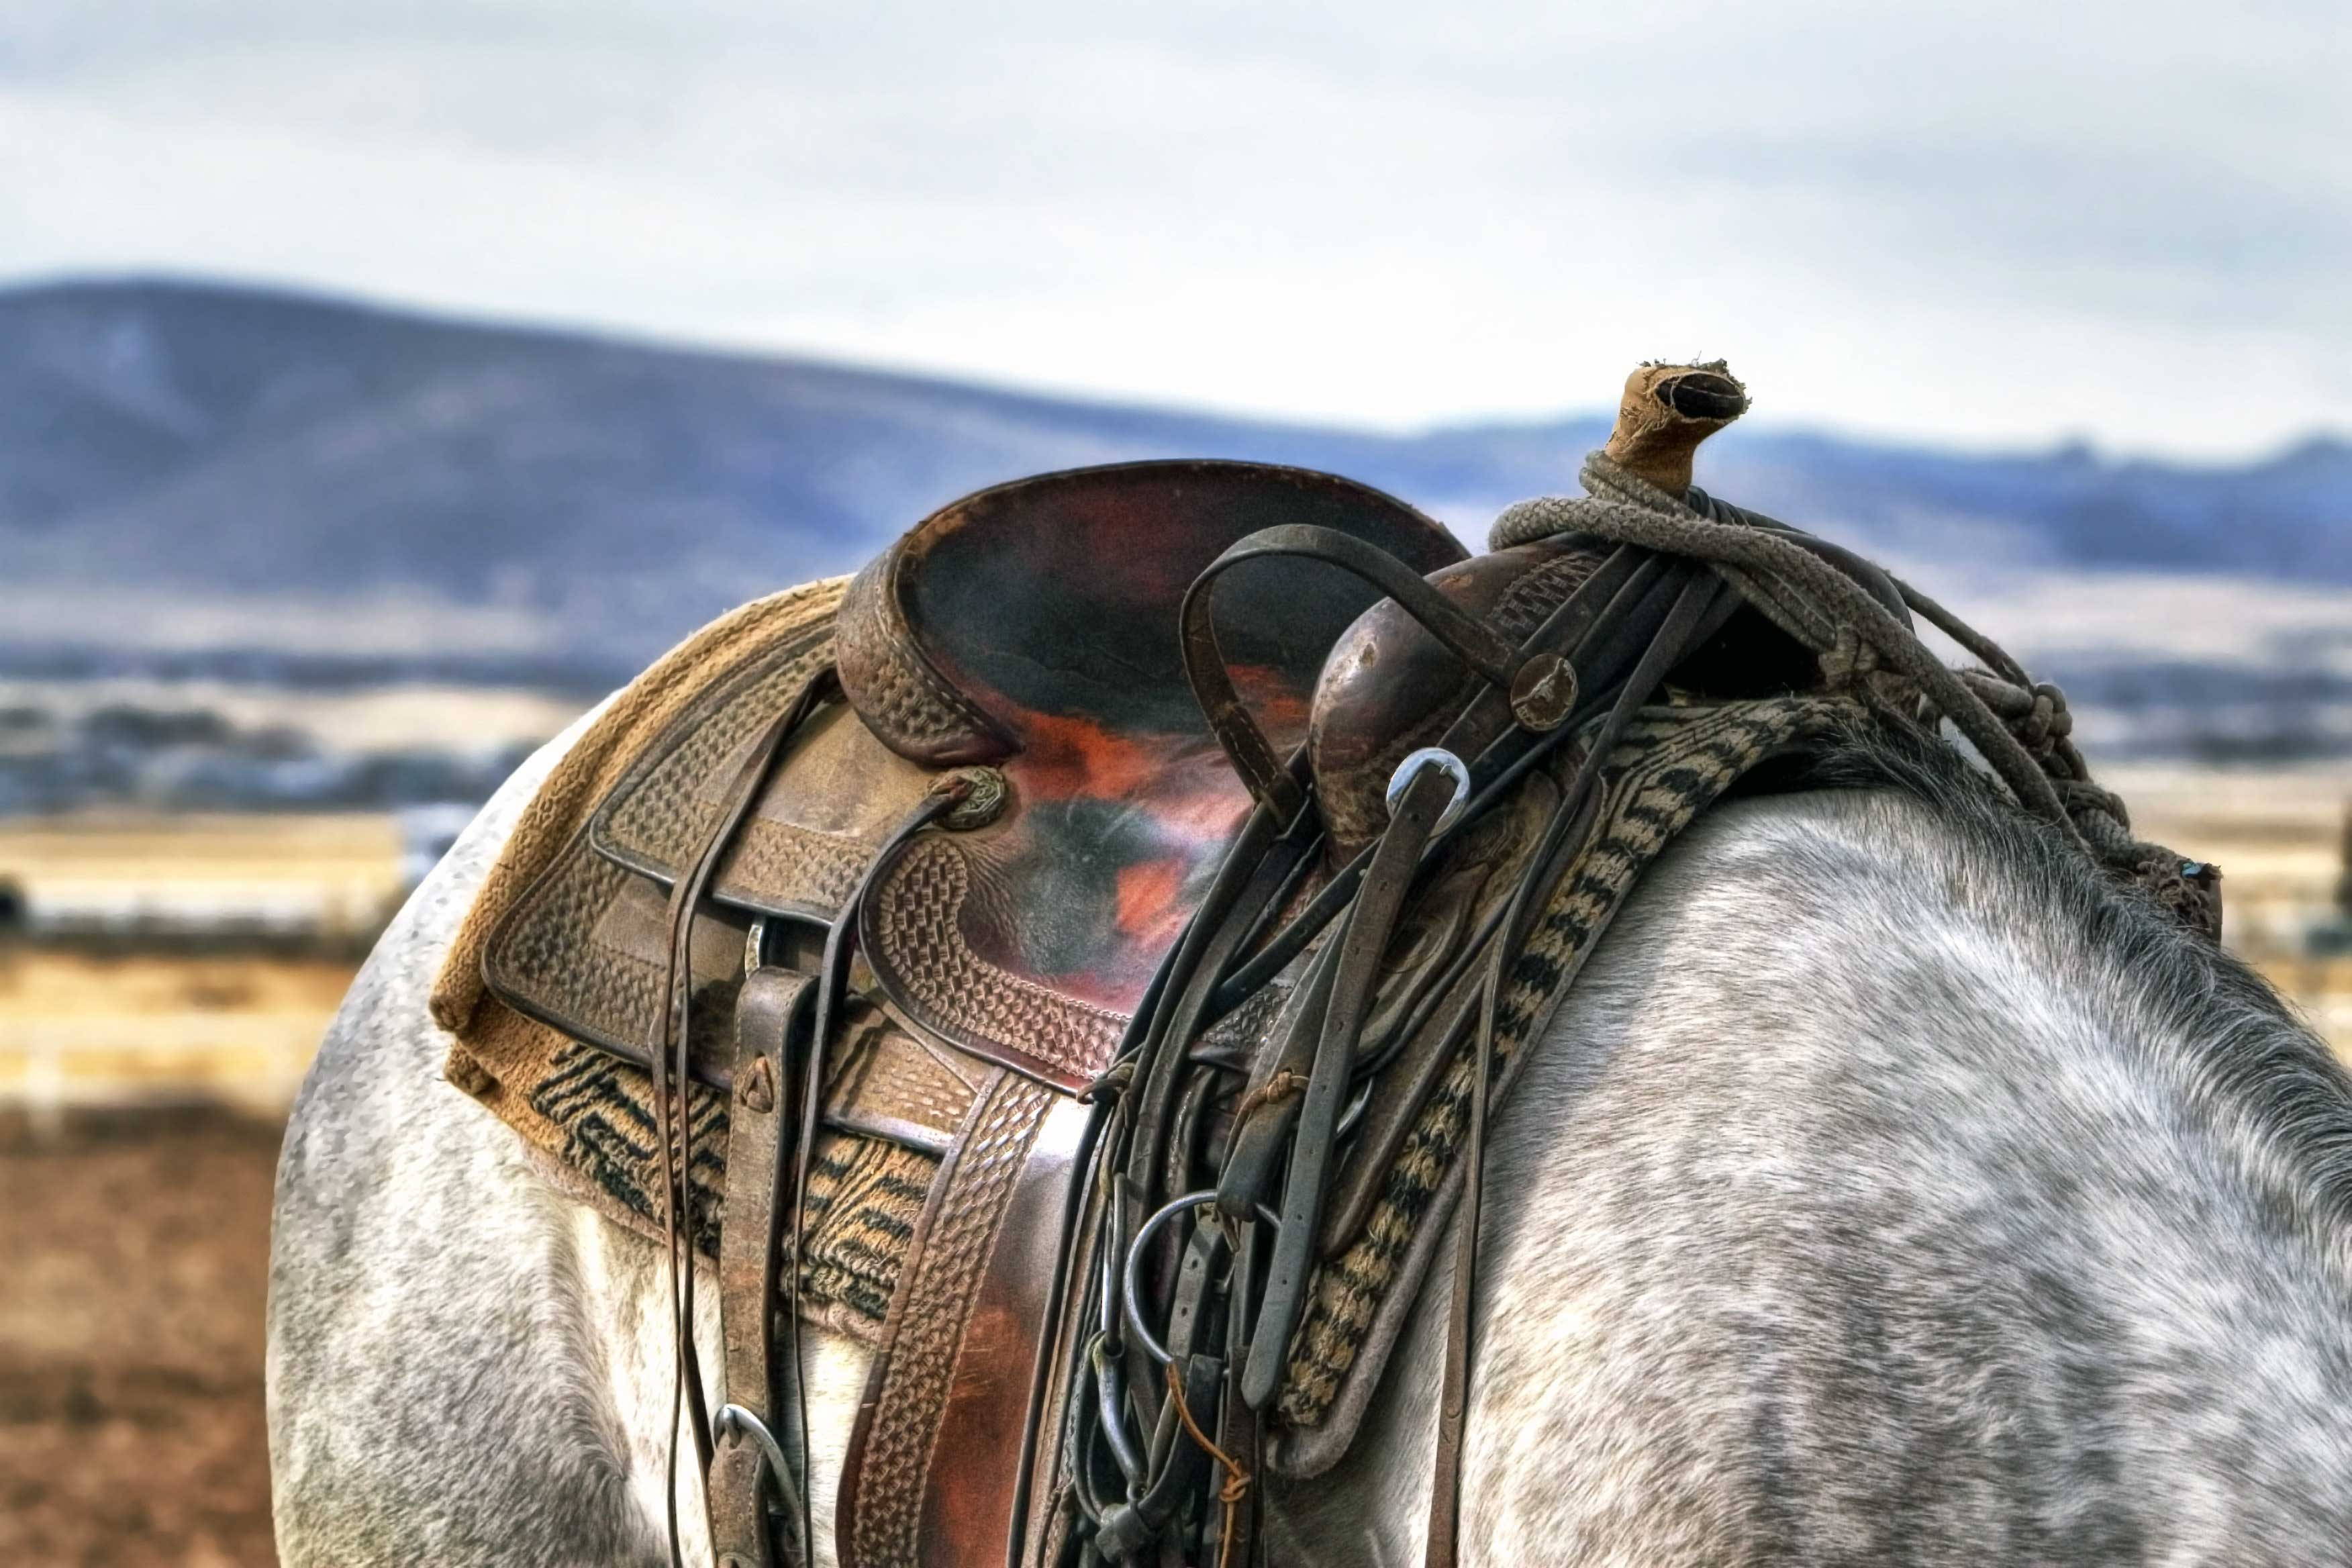 Shop for horse tack and gear